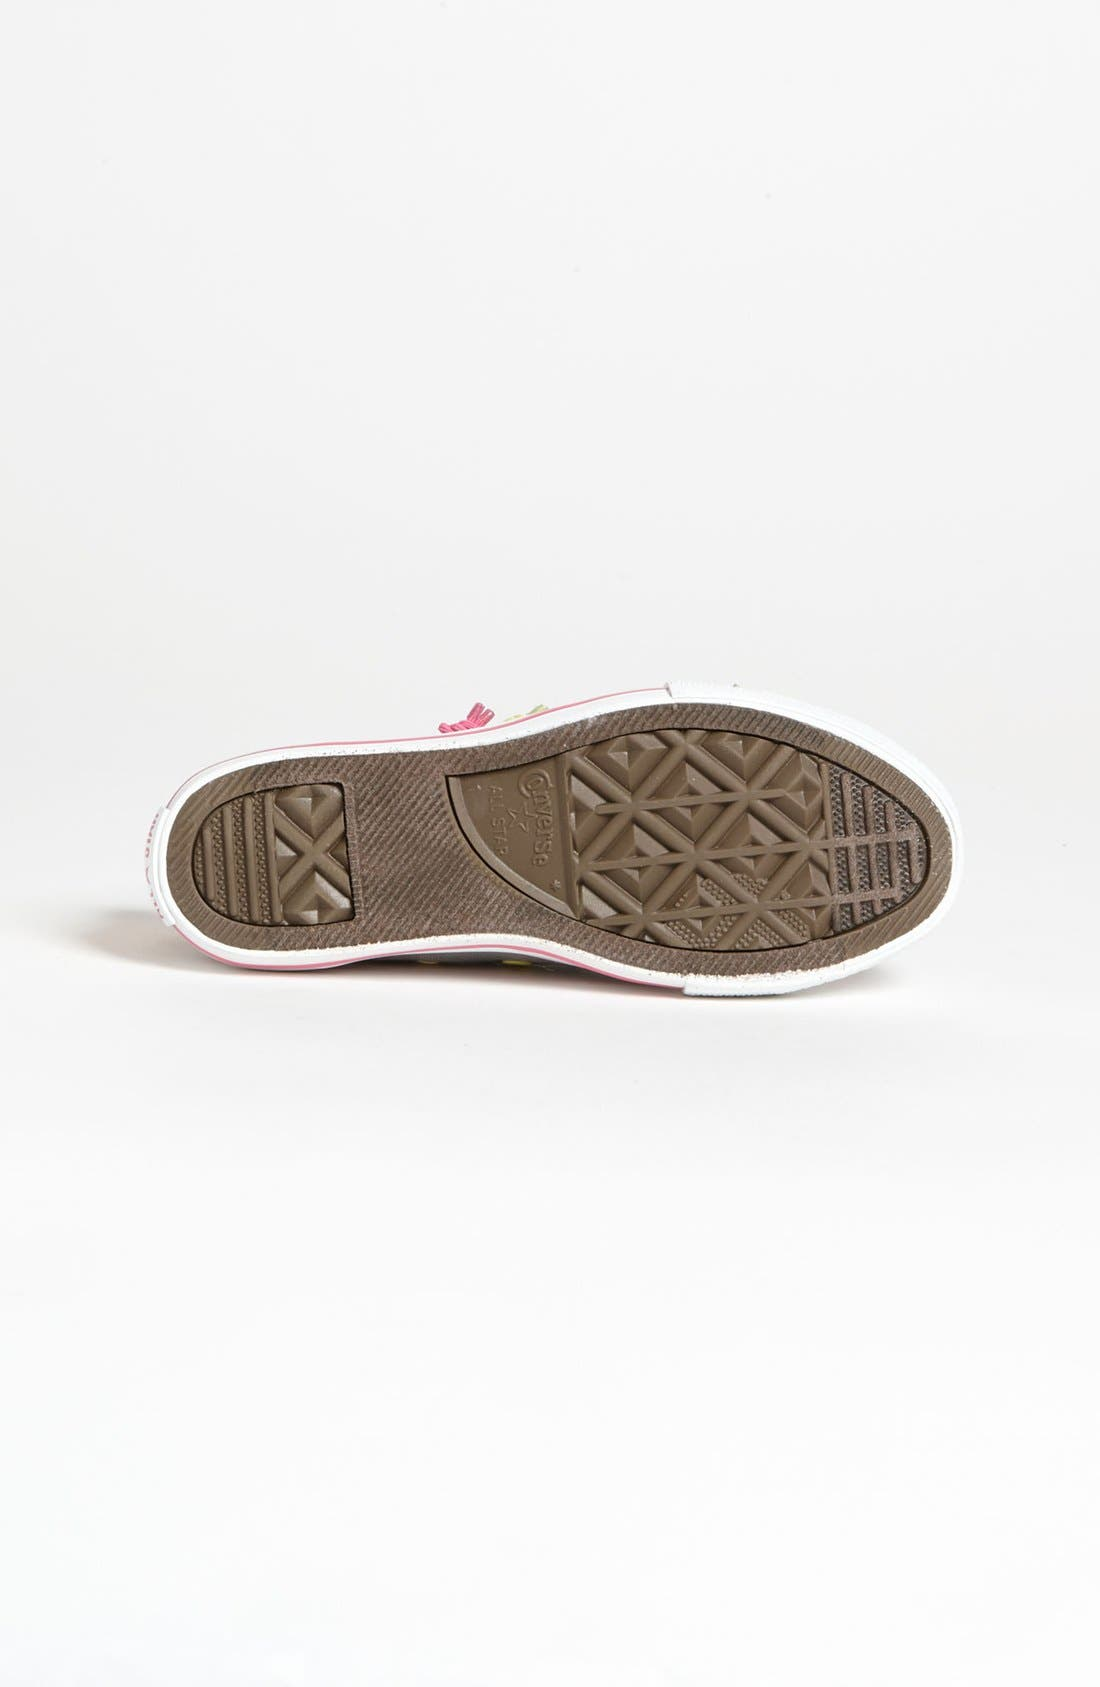 All Star<sup>®</sup> 'Loop 2 Knot' Sneaker,                             Alternate thumbnail 2, color,